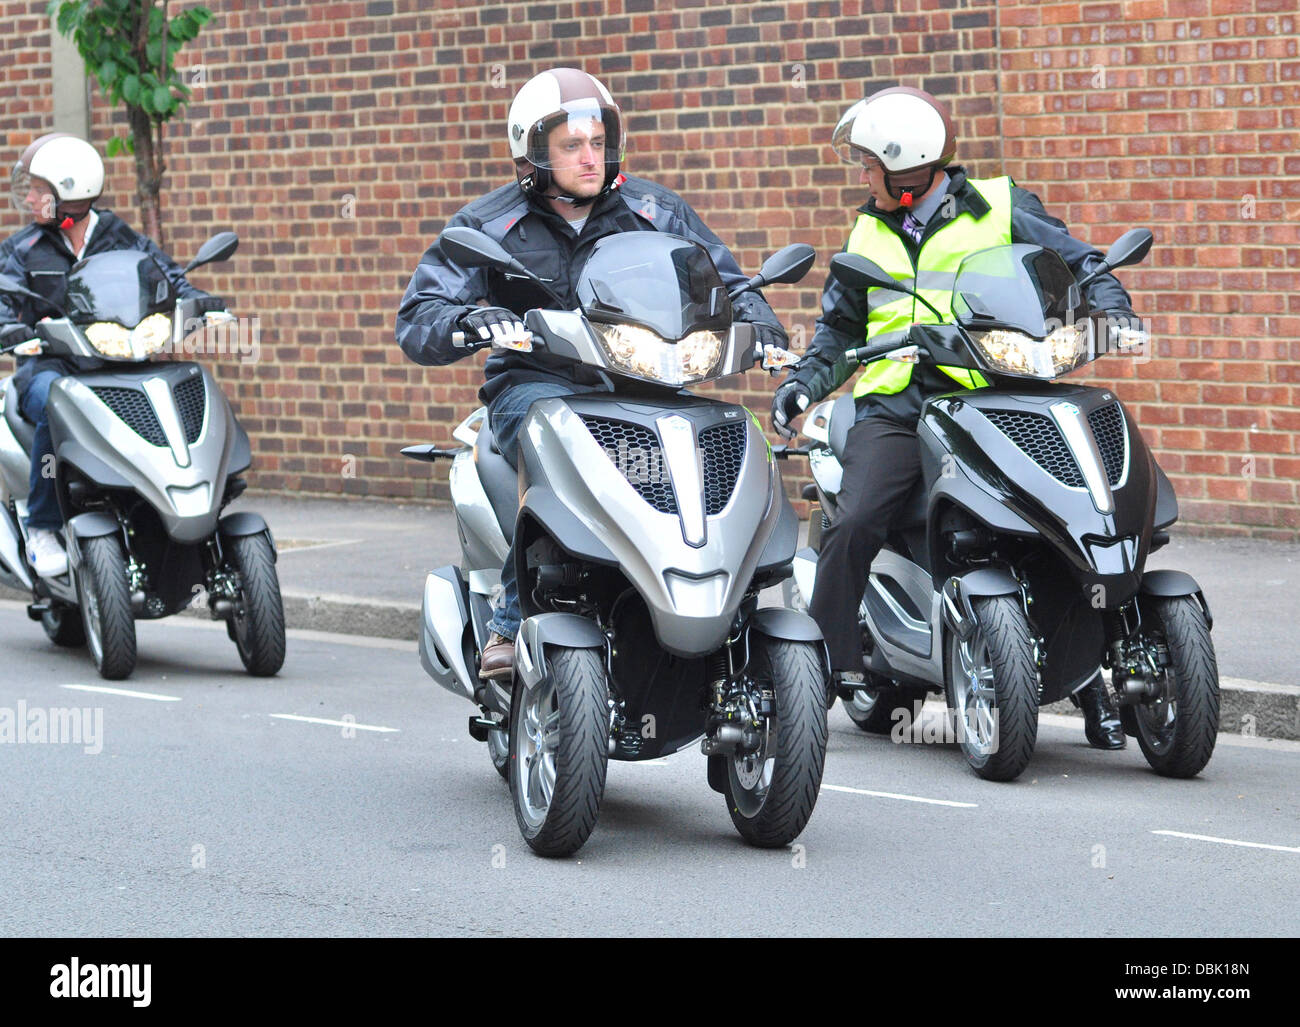 The launch of the new Piaggio MP3 Yourban scooter at The Hurlingham ...